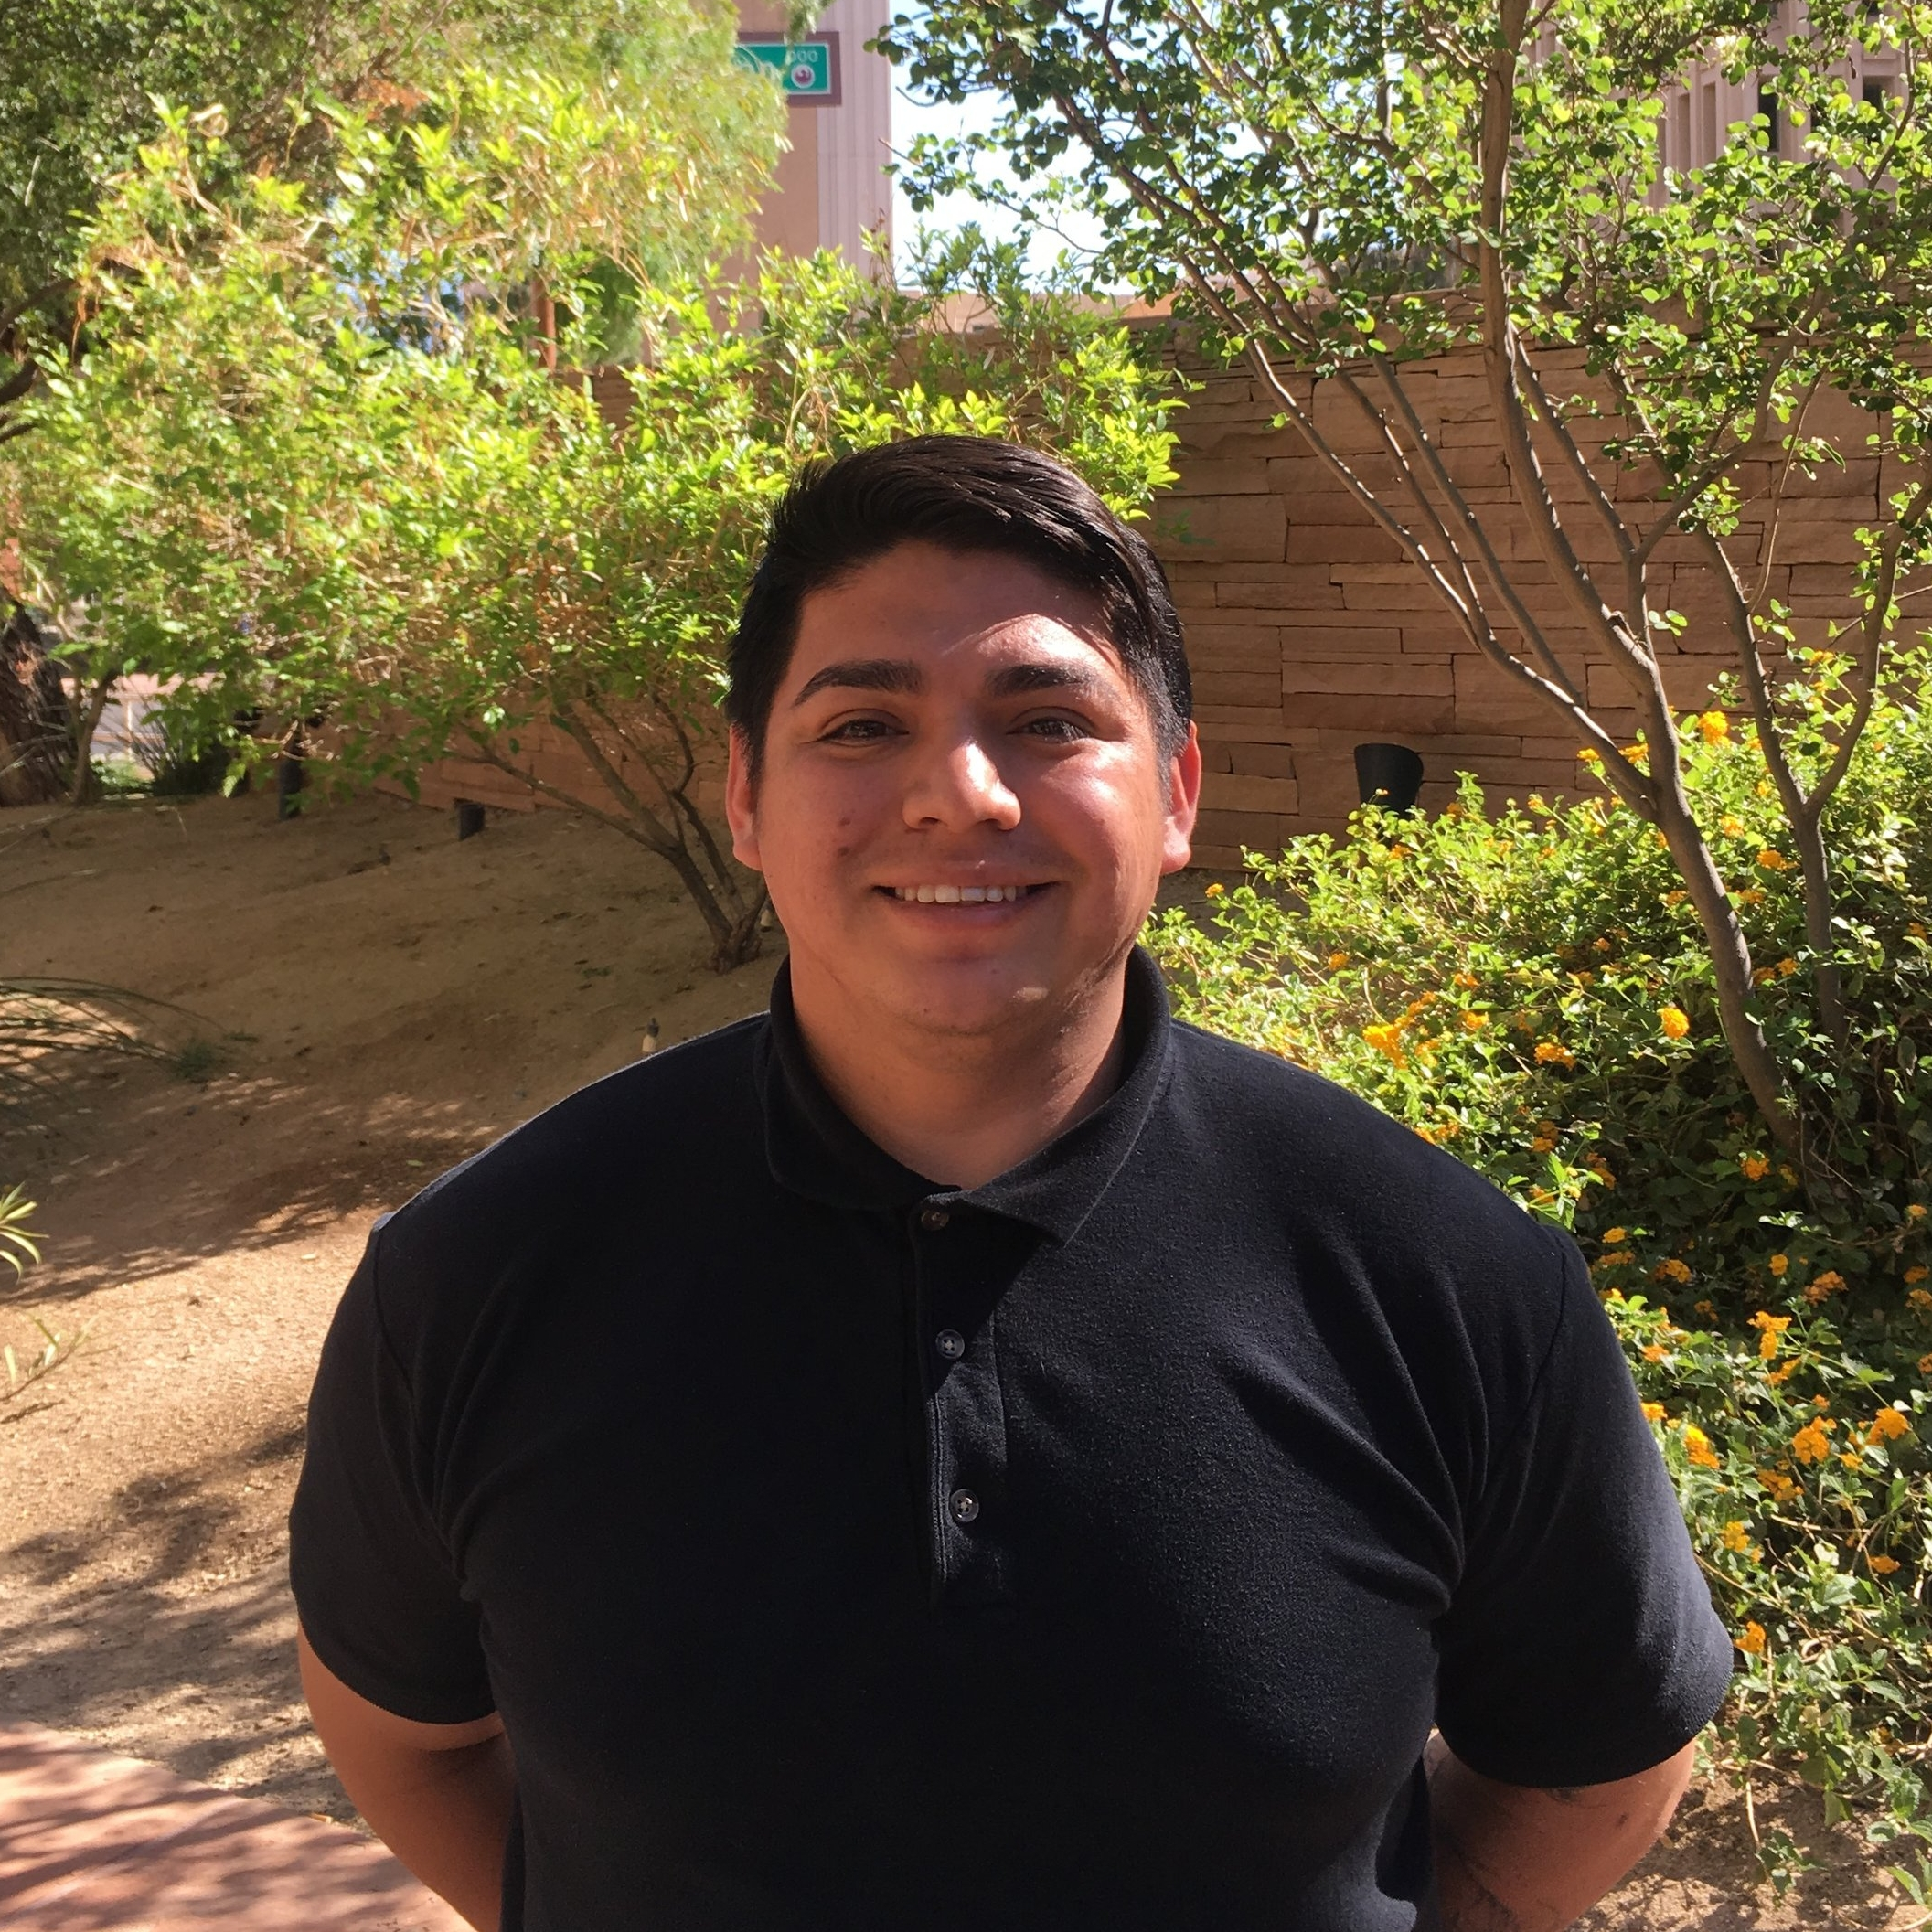 Felix Moran   Youth Outreach Coordinator   Felix Moran joined Opportunities for Youth on April 2, 2018. Formerly an opportunity youth himself, he aims to empower youth to find their voice, encouraging them to speak to their local/state political officials. He loves advocacy and being involved in the community. Felix plans to further his education and attend Arizona State University for political science. He would like to make Arizona a better place for all its residents.    Felix.Moran@asu.edu      (602) 534-6838